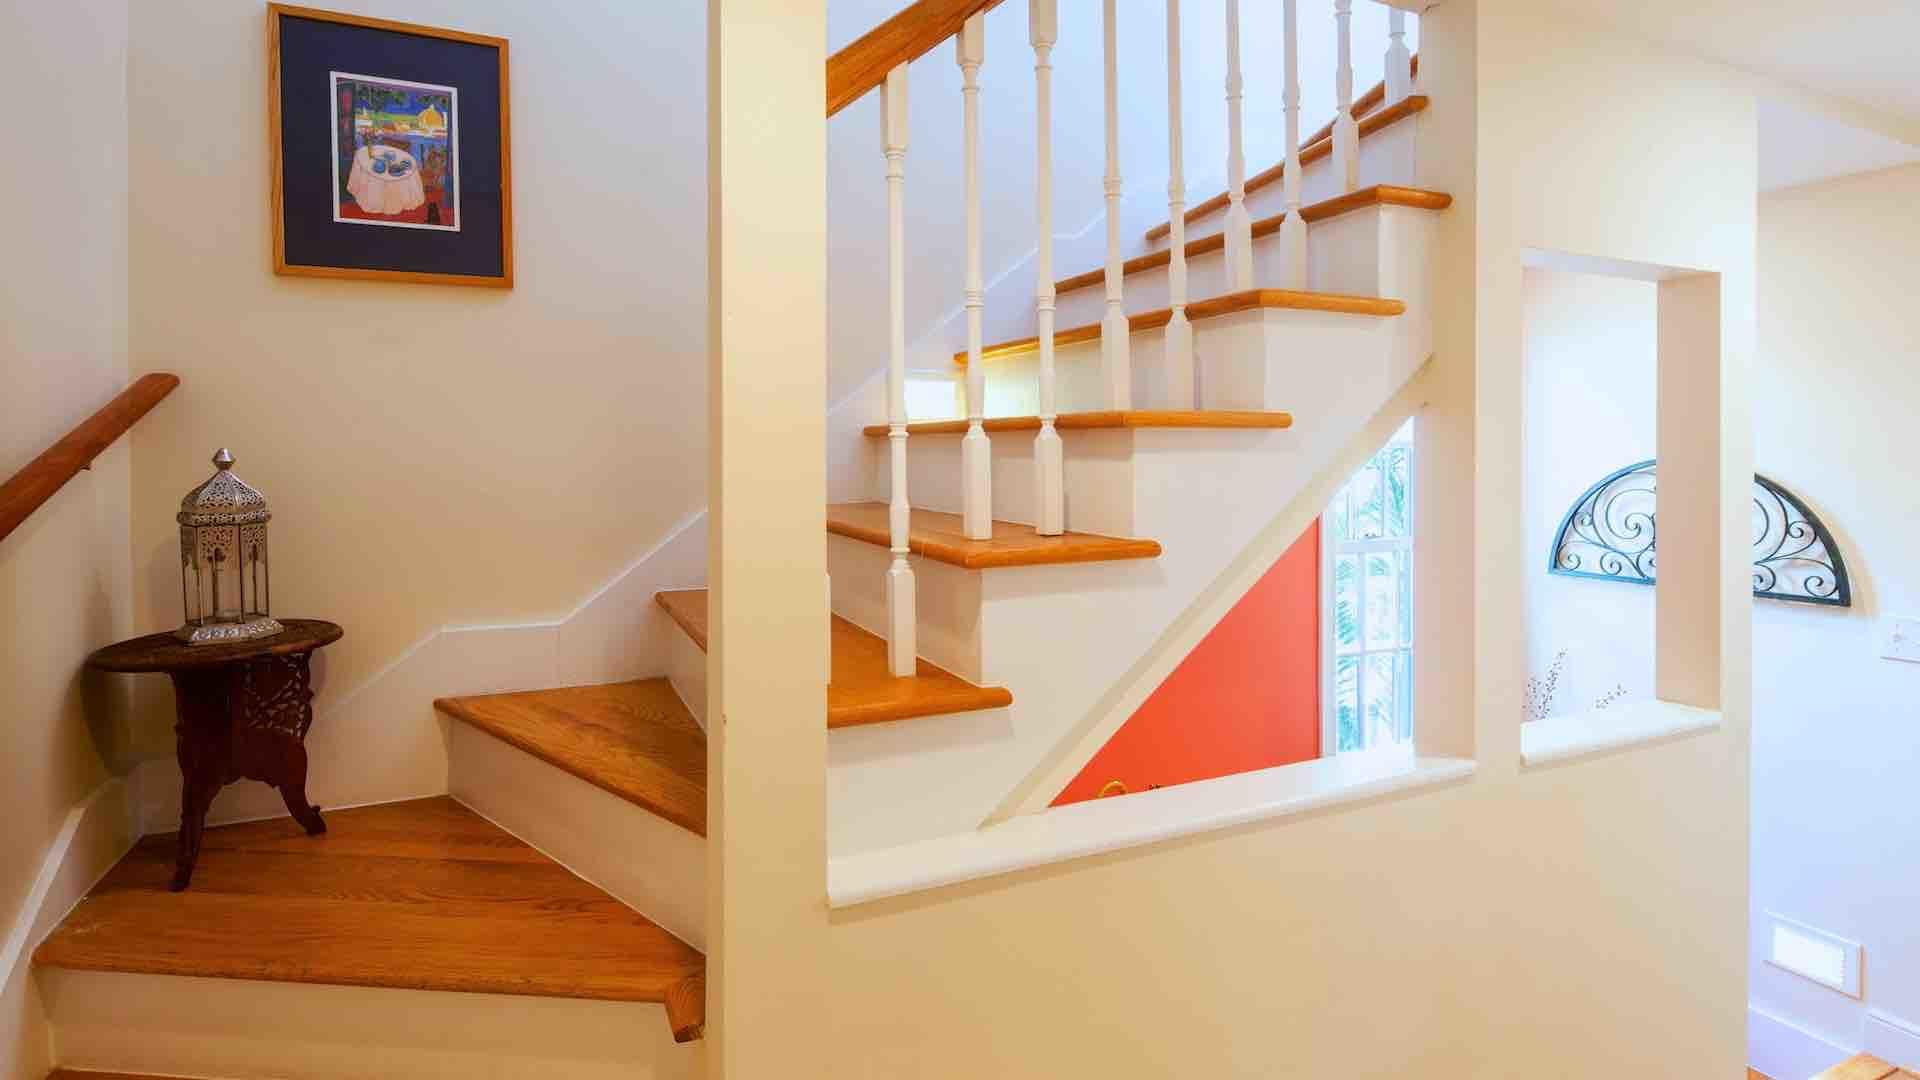 Take the stairs to the third floor, where you'll find the master suite...